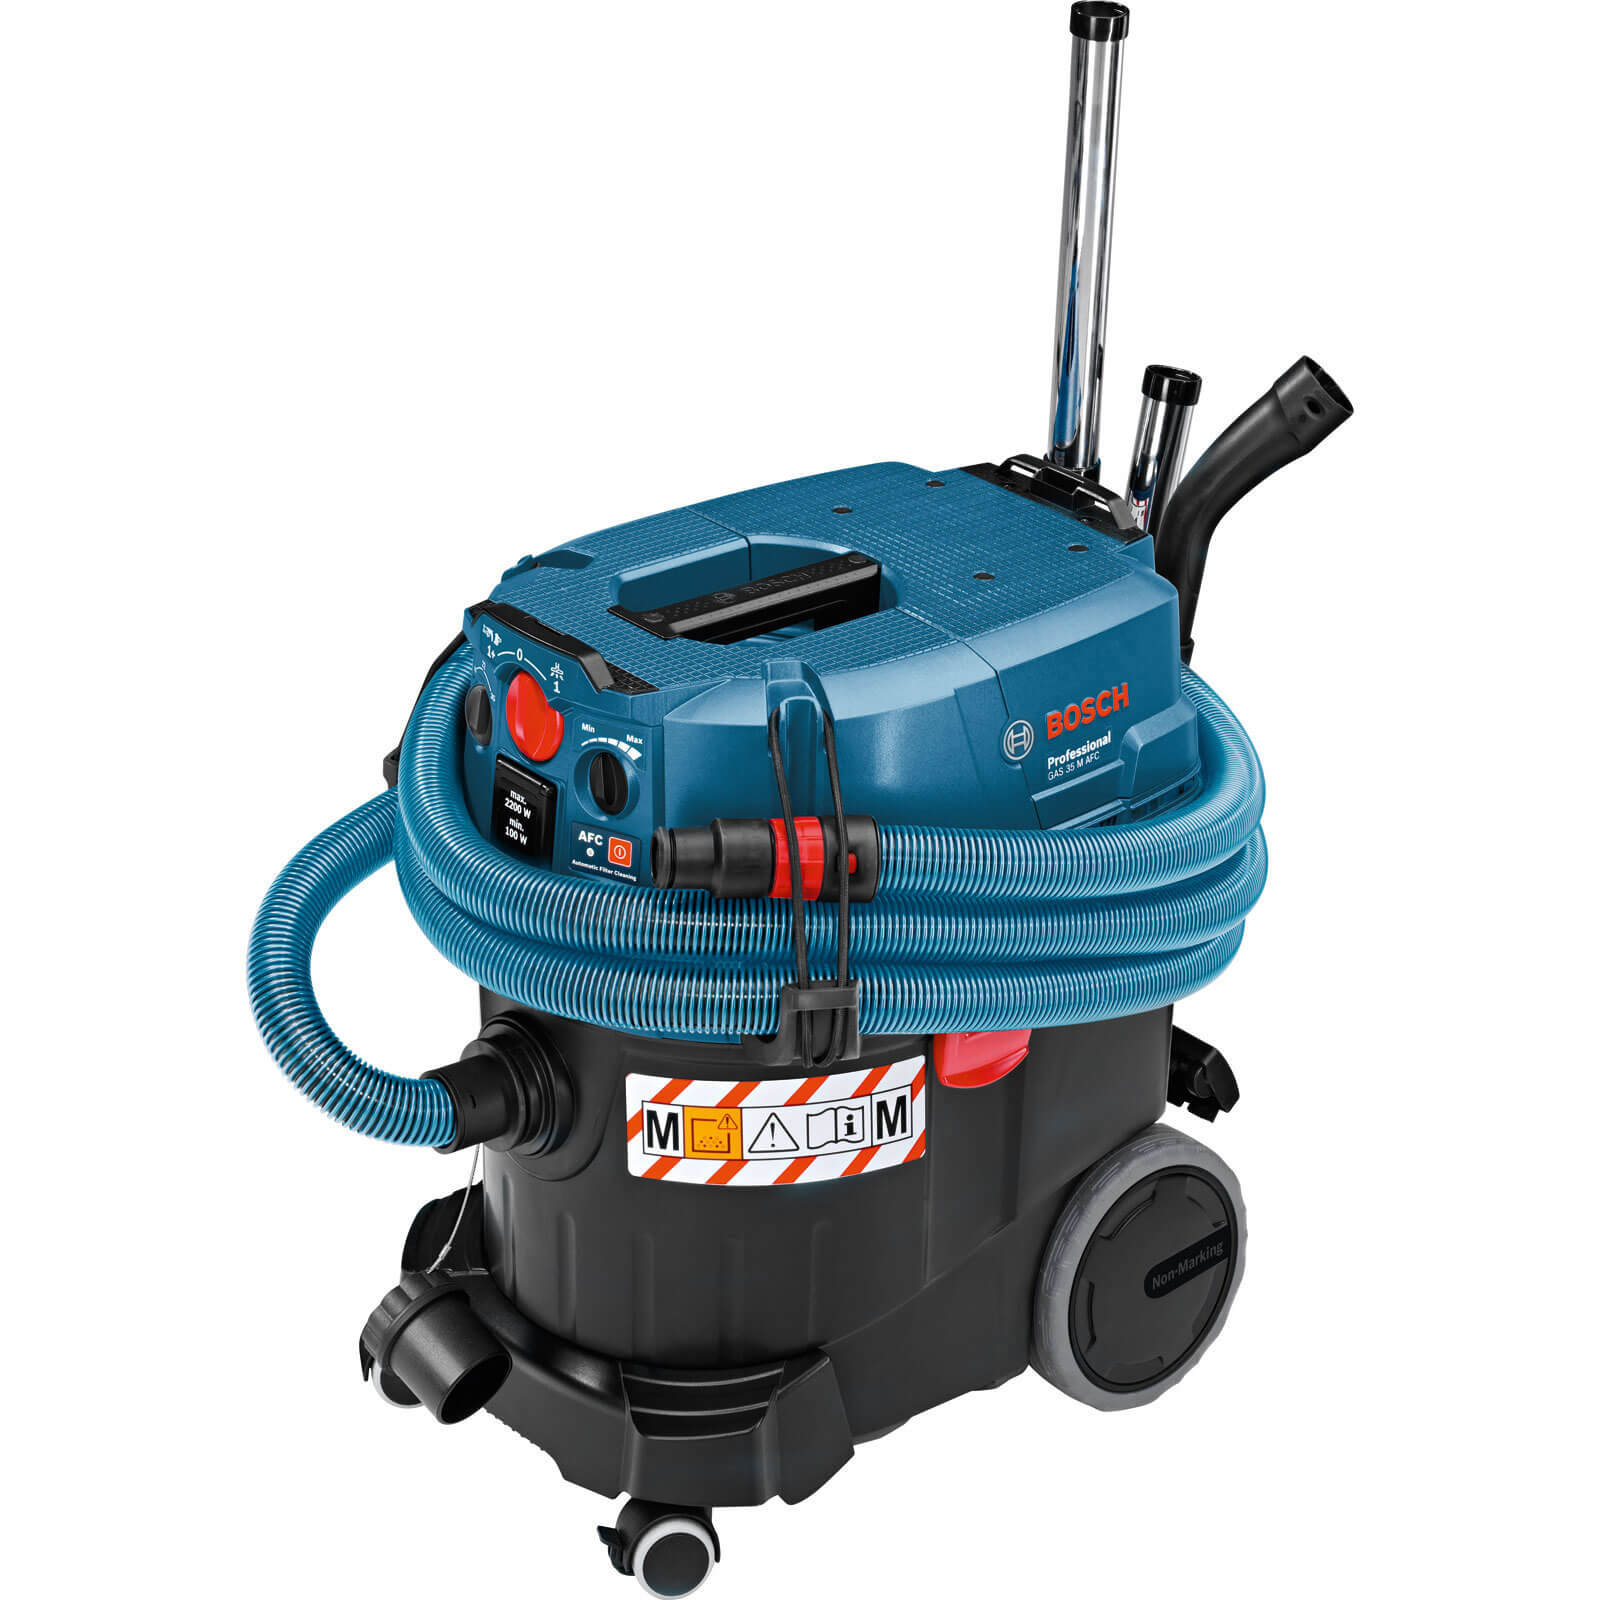 Bosch GAS 35 M AFC Wet & Dry Vacuum Cleaner & Dust Extractor 35L Tank 1200w 240v